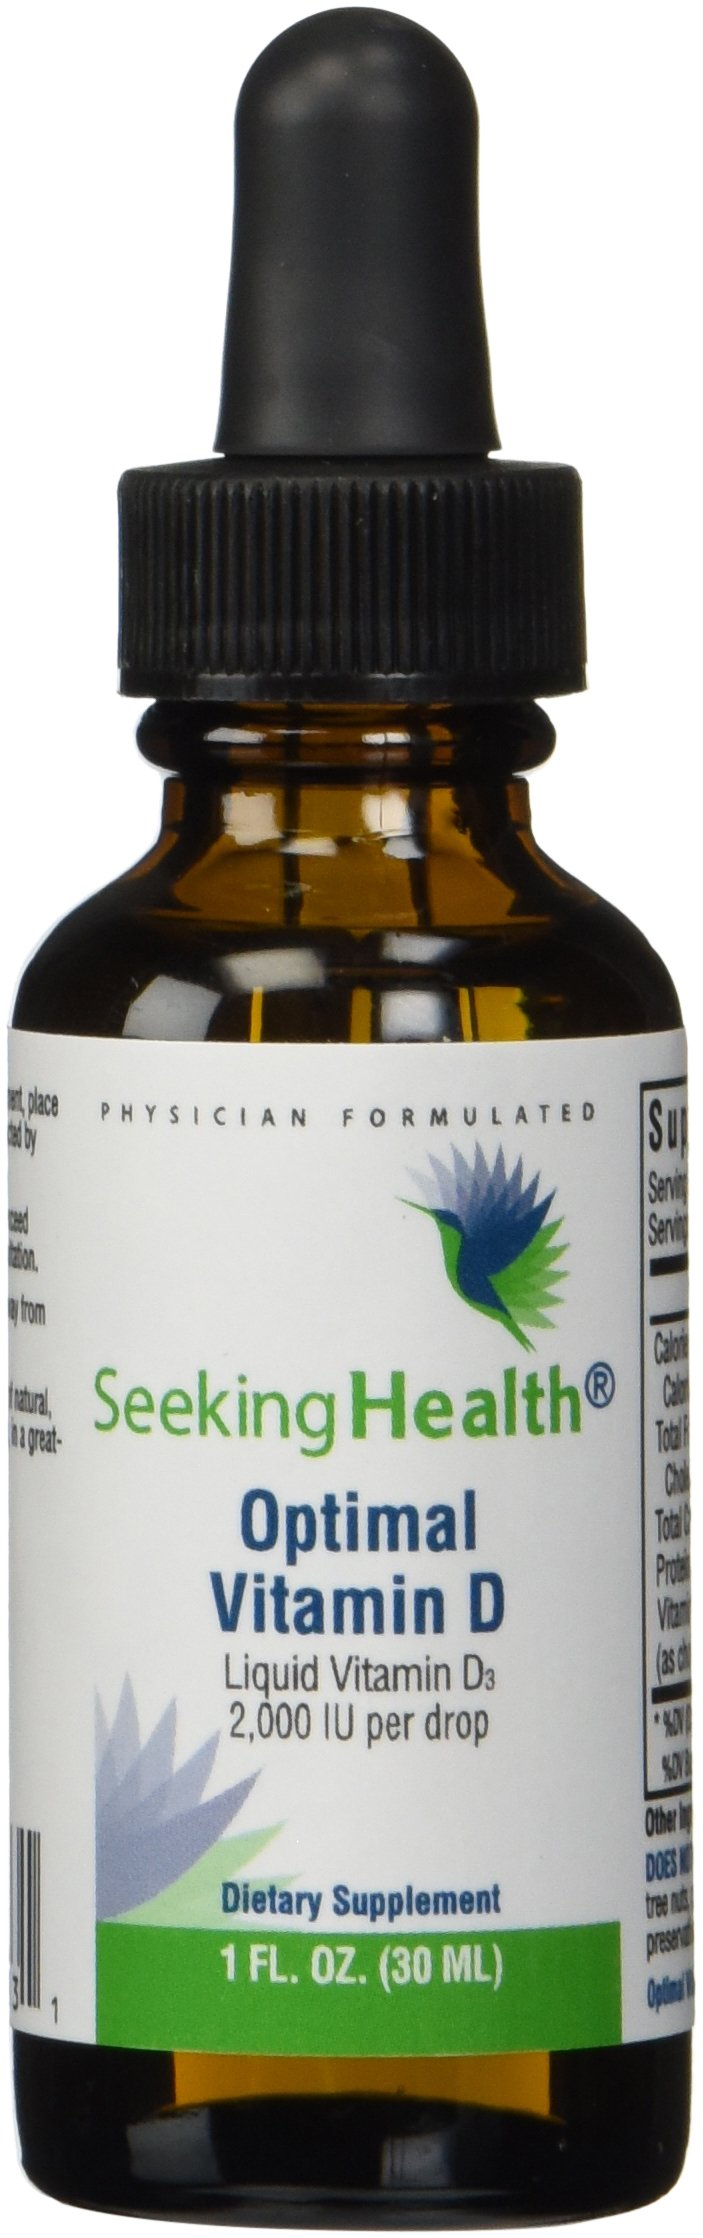 Seeking Health | Optimal Vitamin D3 Liquid | Liquid Vitamins | 2,000 IU Vitamin D per Drop by Seeking Health (Image #2)